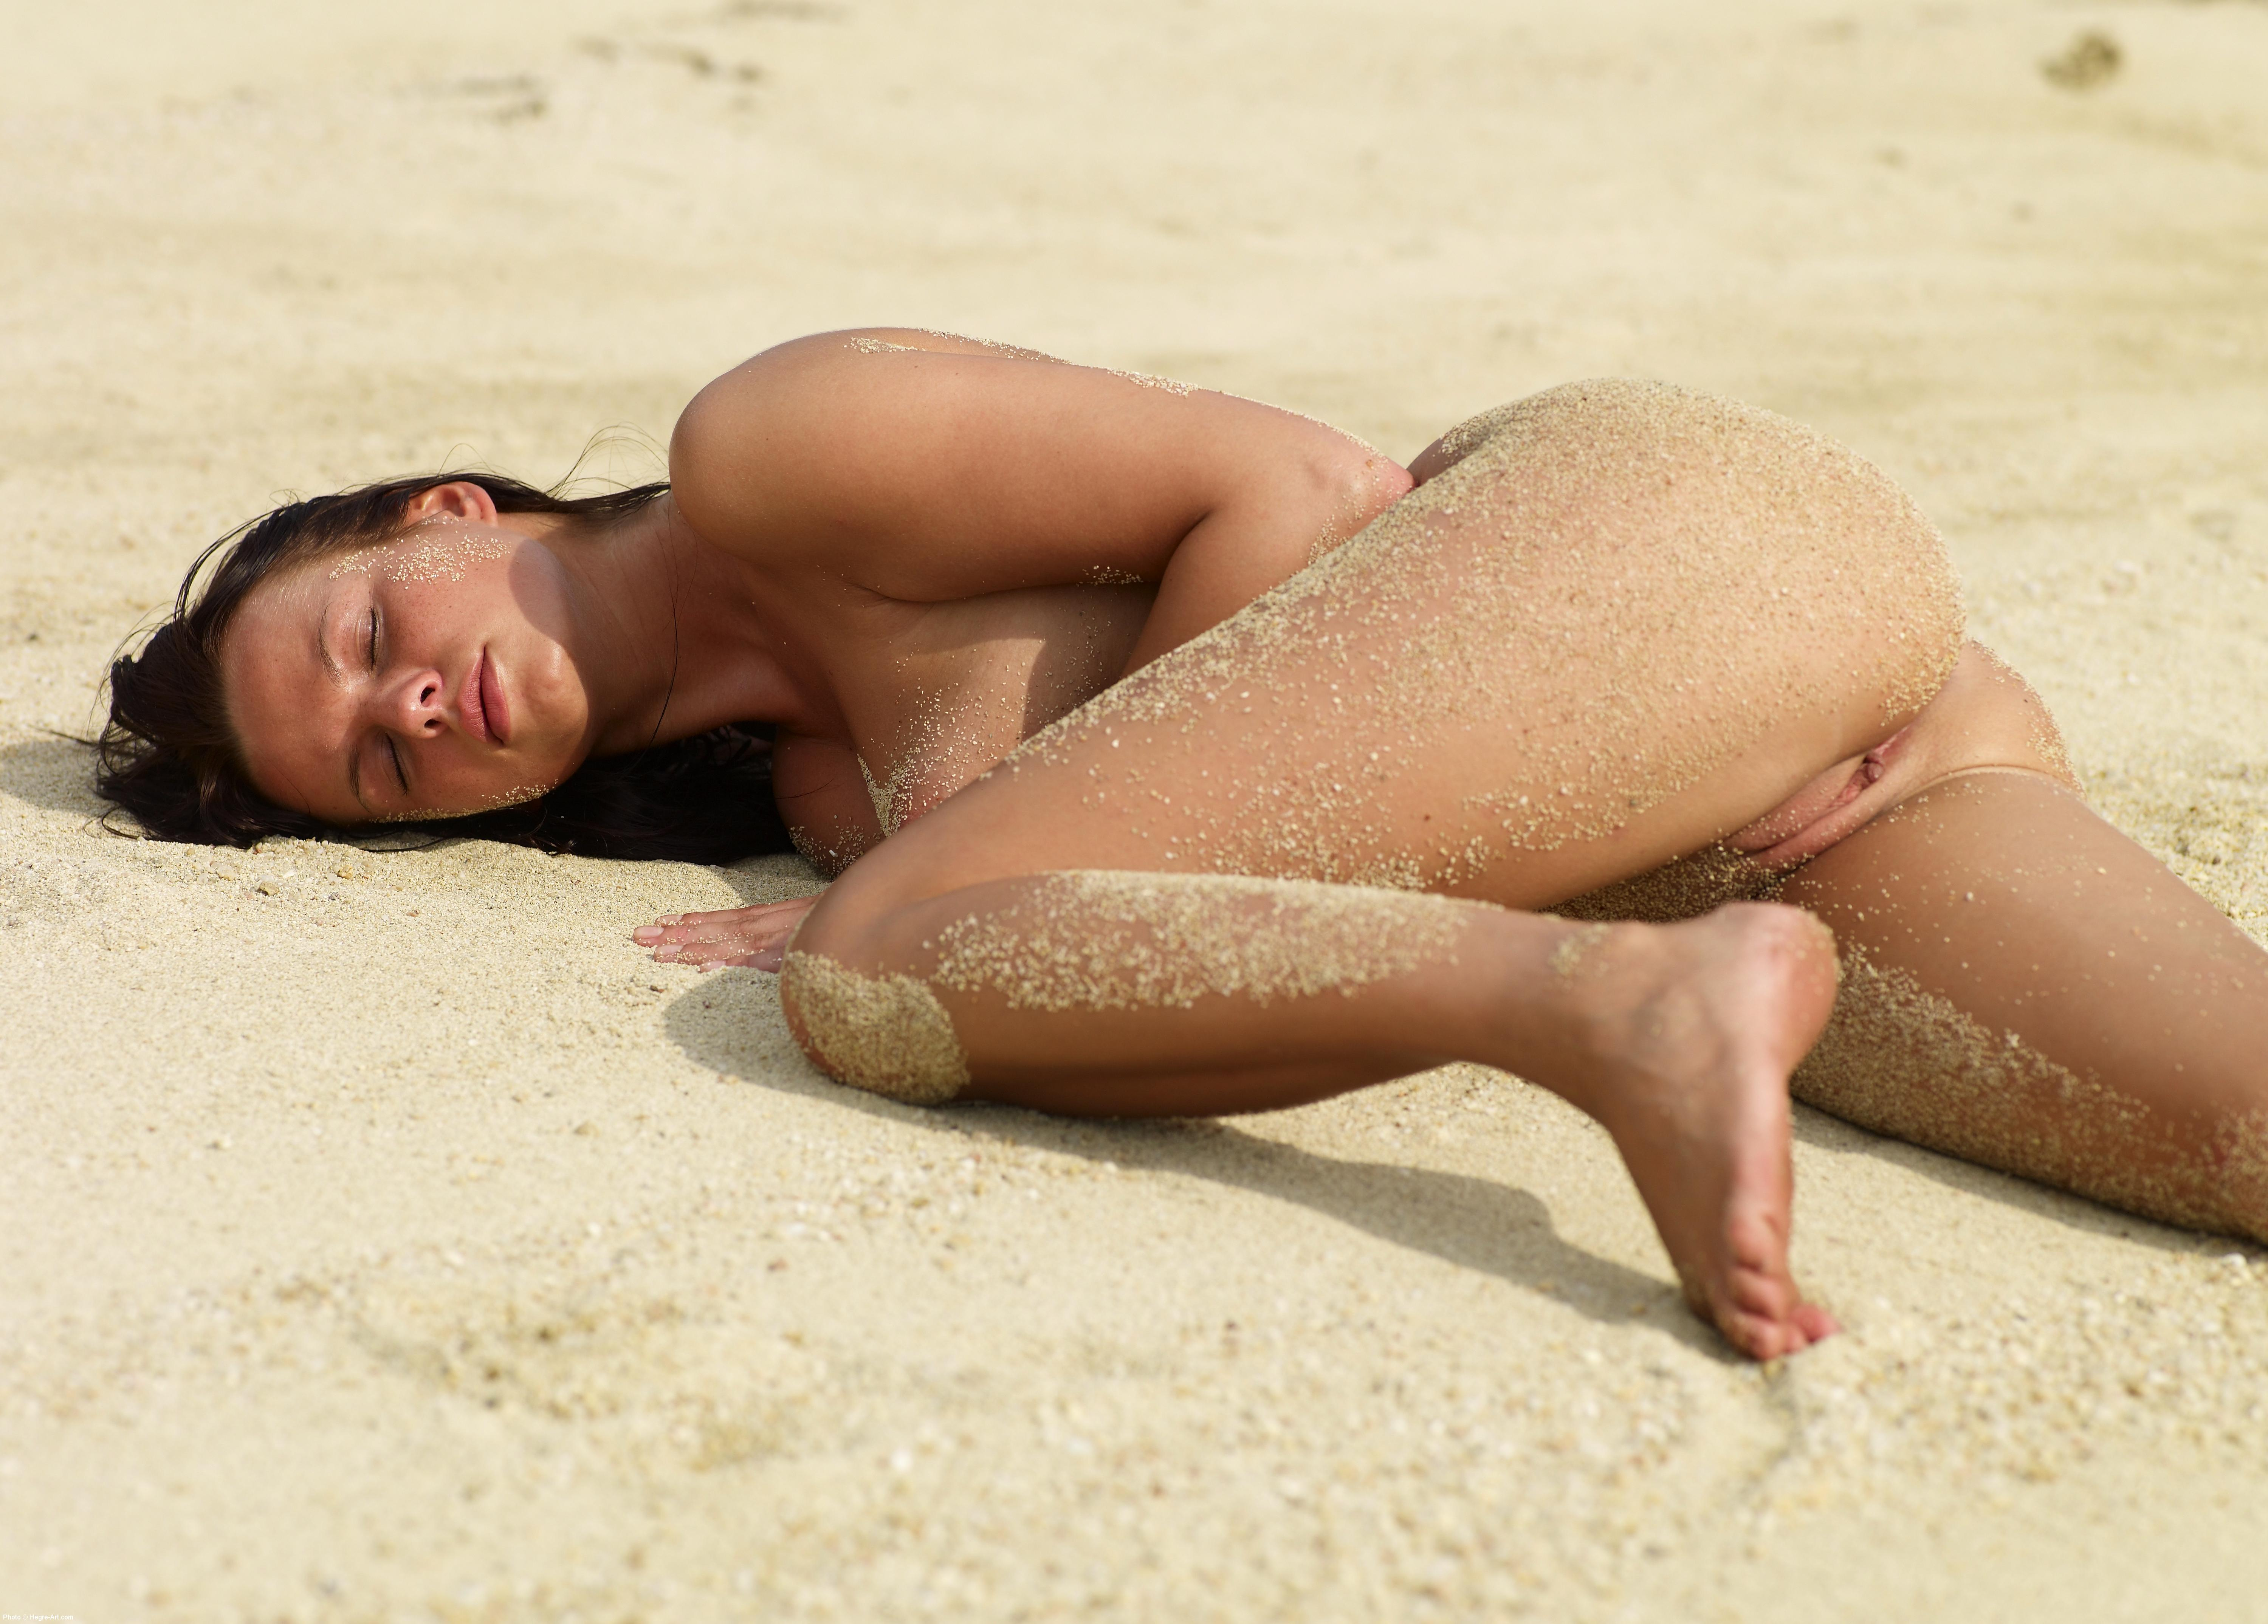 Lysa Nude Thai Beach 2008 06 14 025 xxxl